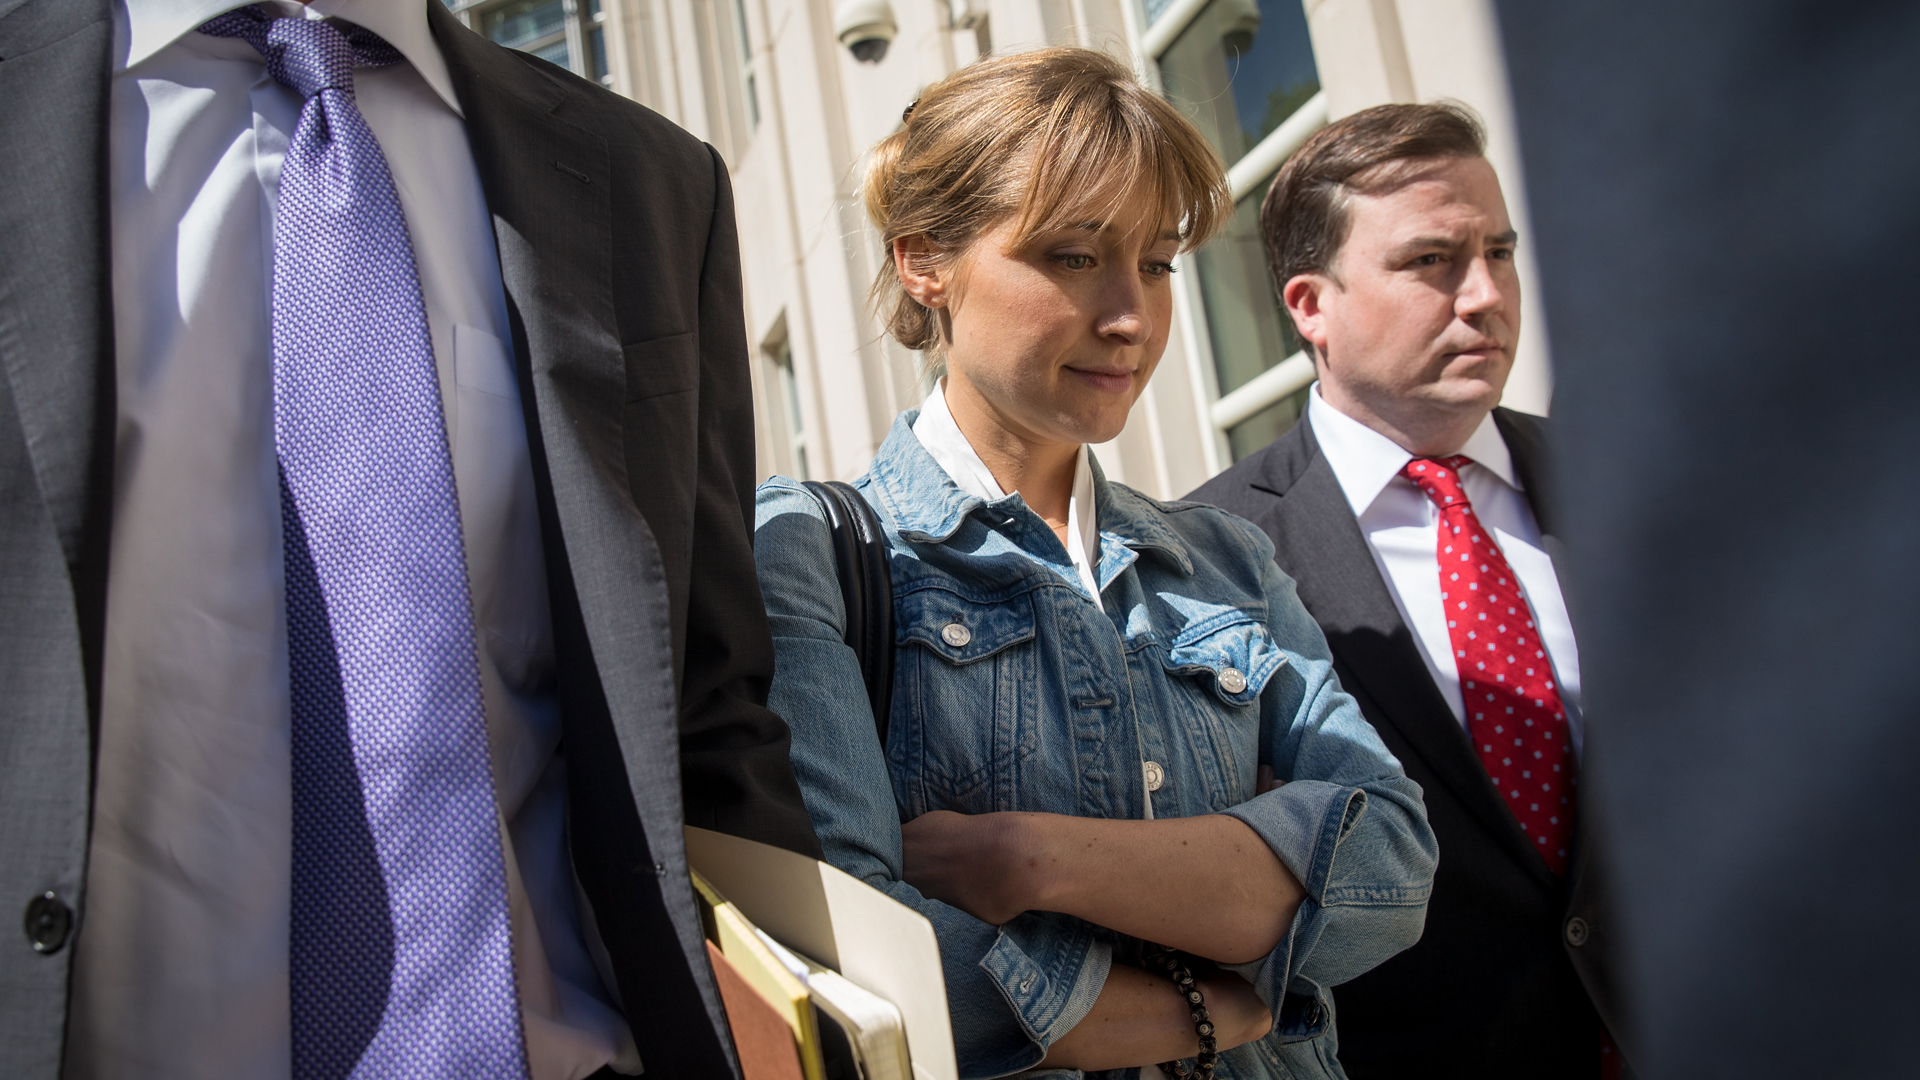 Actress Allison Mack exits the U.S. District Court for the Eastern District of New York following a status conference, June 12, 2018 in the Brooklyn borough of New York City. (Credit: by Drew Angerer/Getty Images)